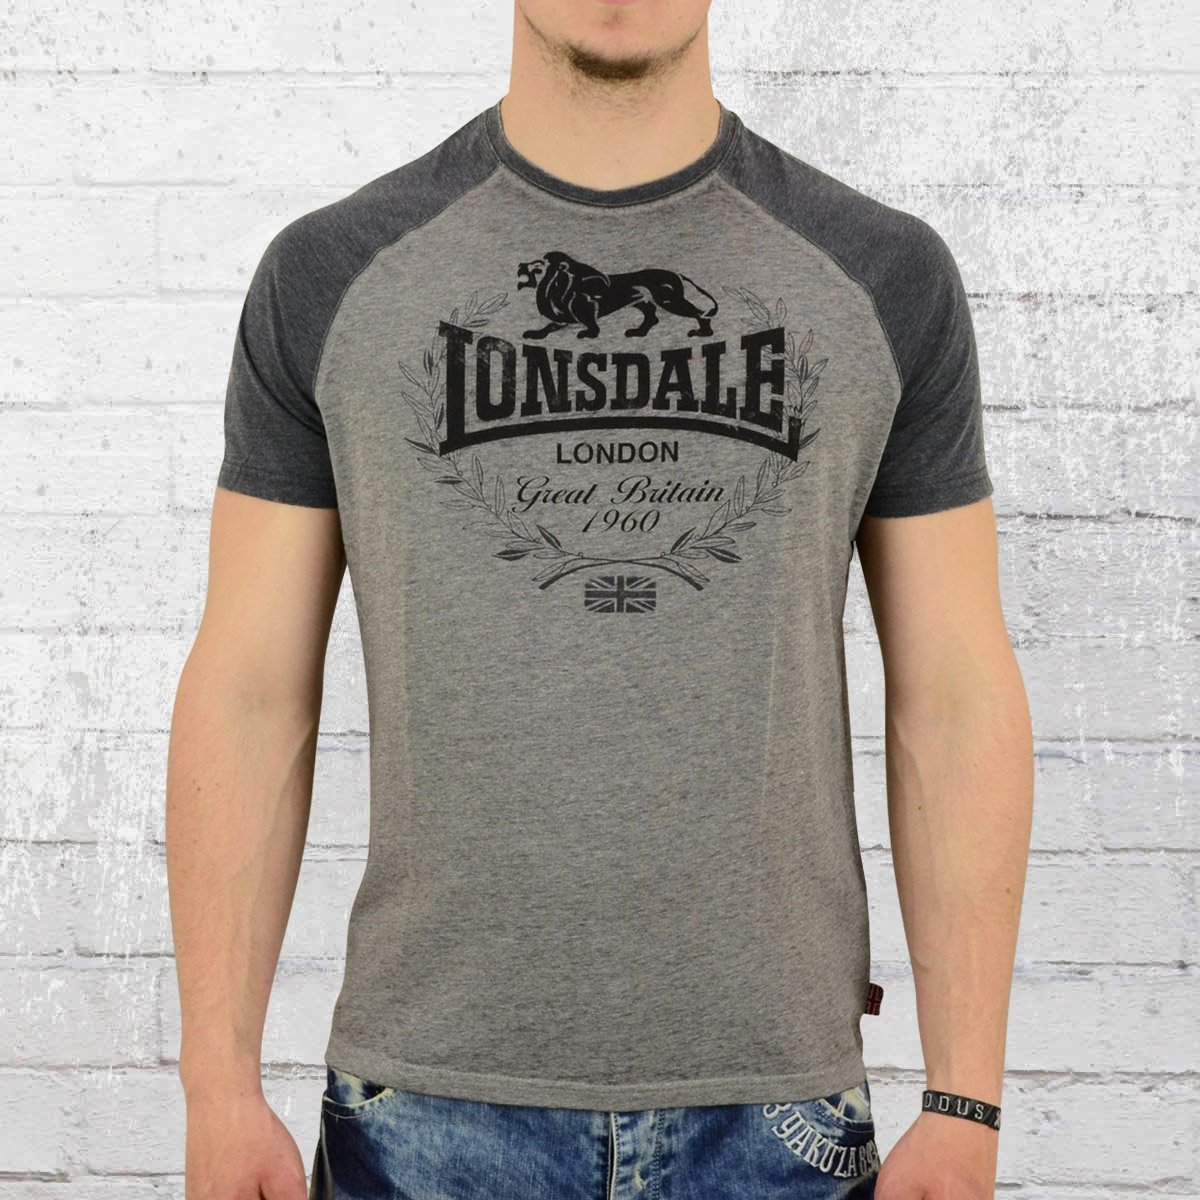 order now lonsdale london male t shirt newmill grey heather. Black Bedroom Furniture Sets. Home Design Ideas